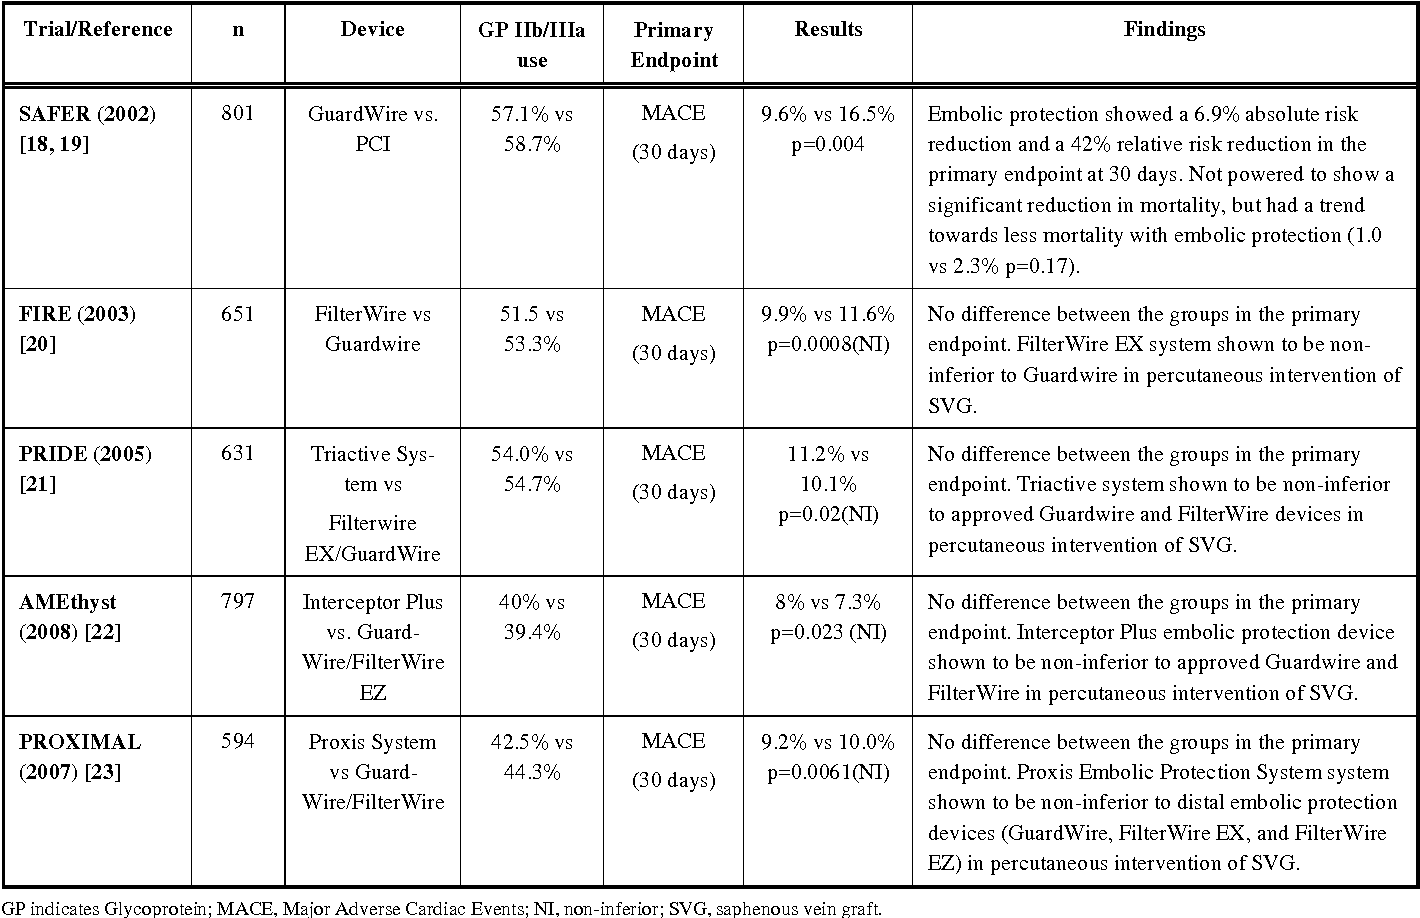 Table 1. Randomized Trials of Embolic Protection Devices in Saphenous Vein Graft Intervention